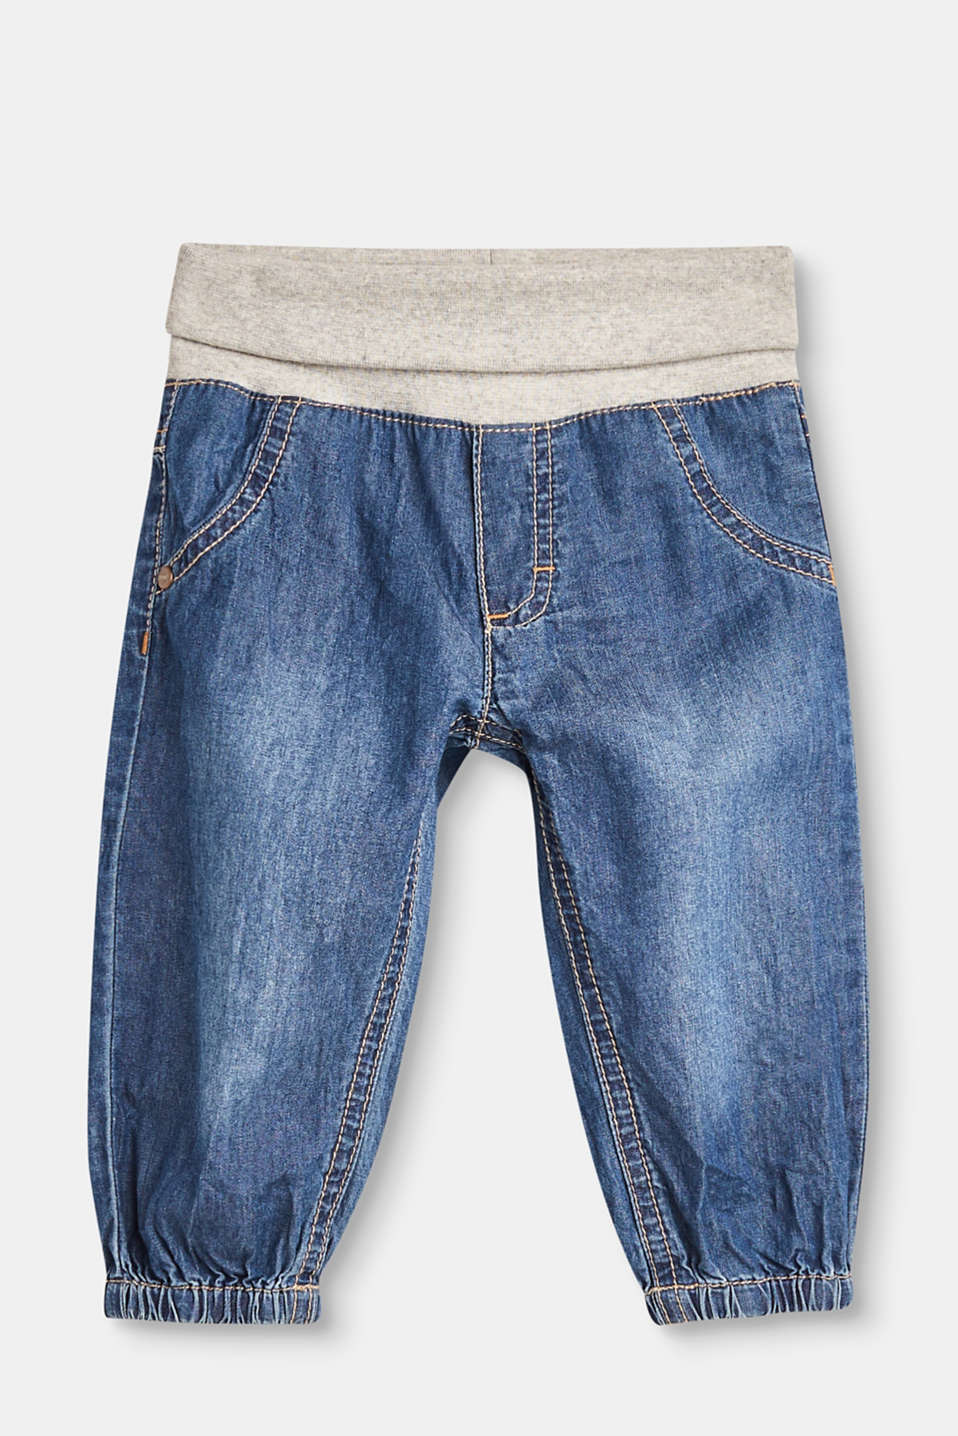 Esprit - Soft jeans with a turn-down waistband